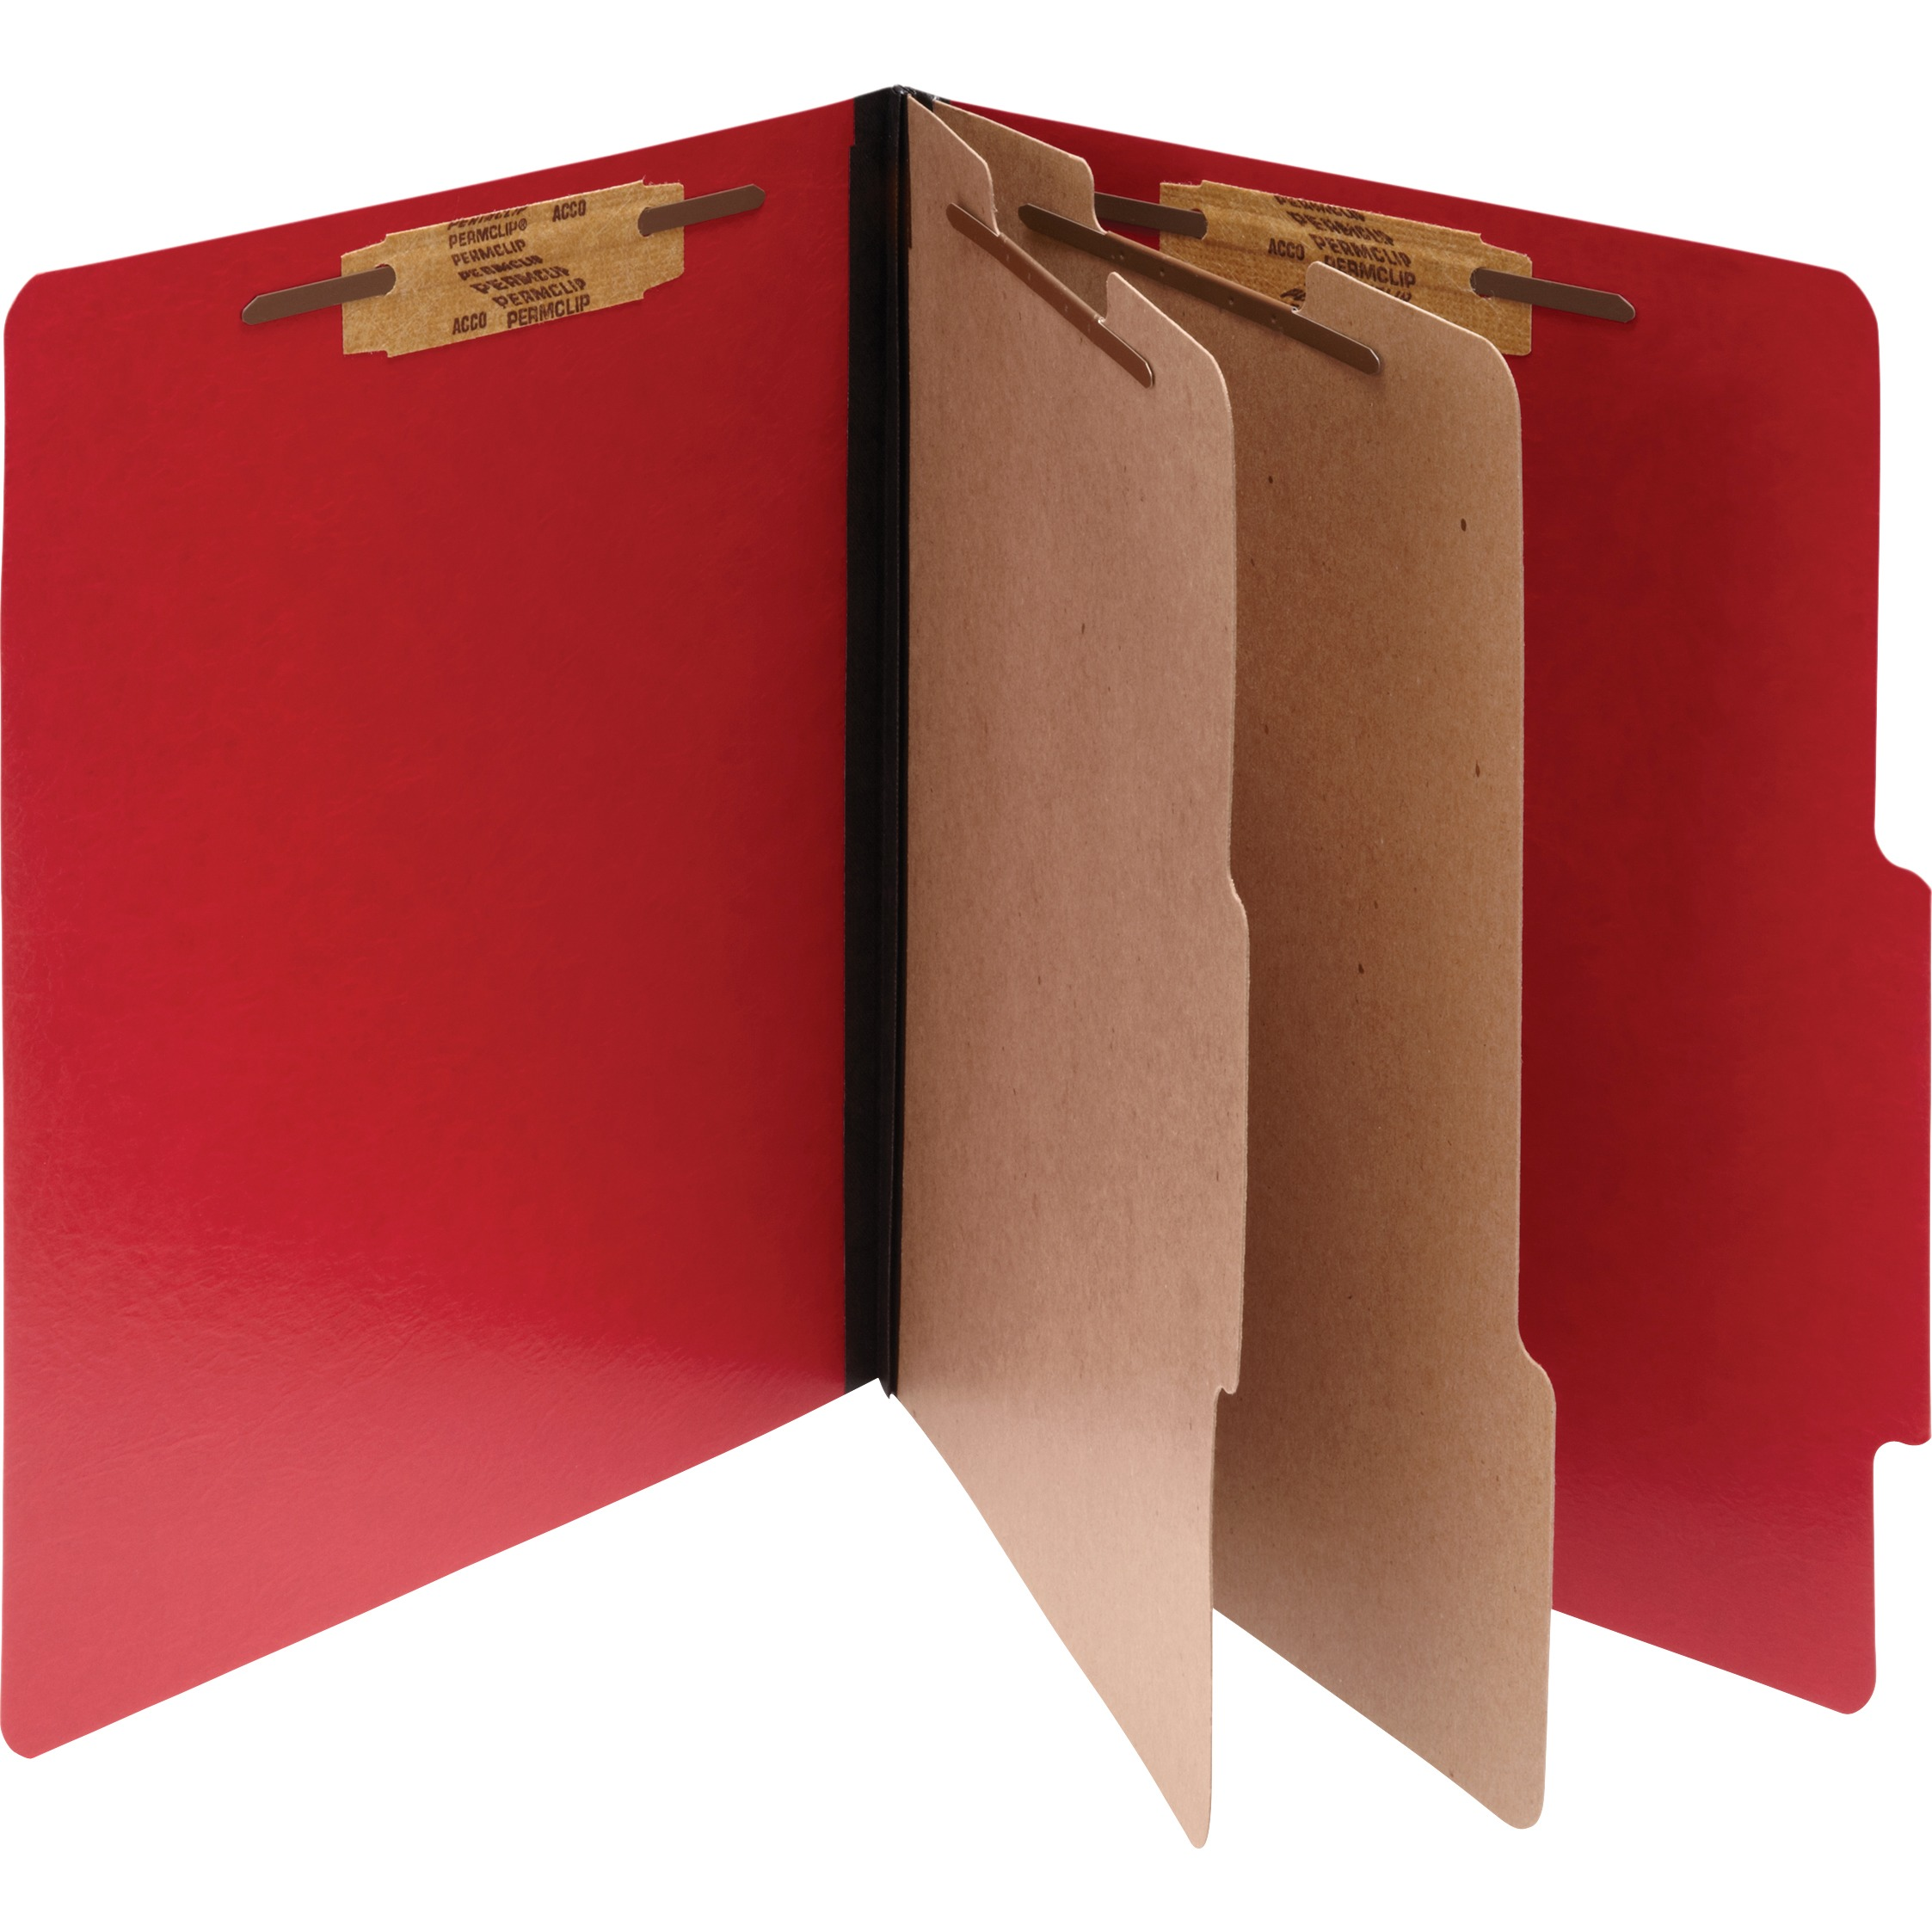 ColorLife PRESSTEX Classification Folders, Letter, 6-Section, Exec Red, 10/Box